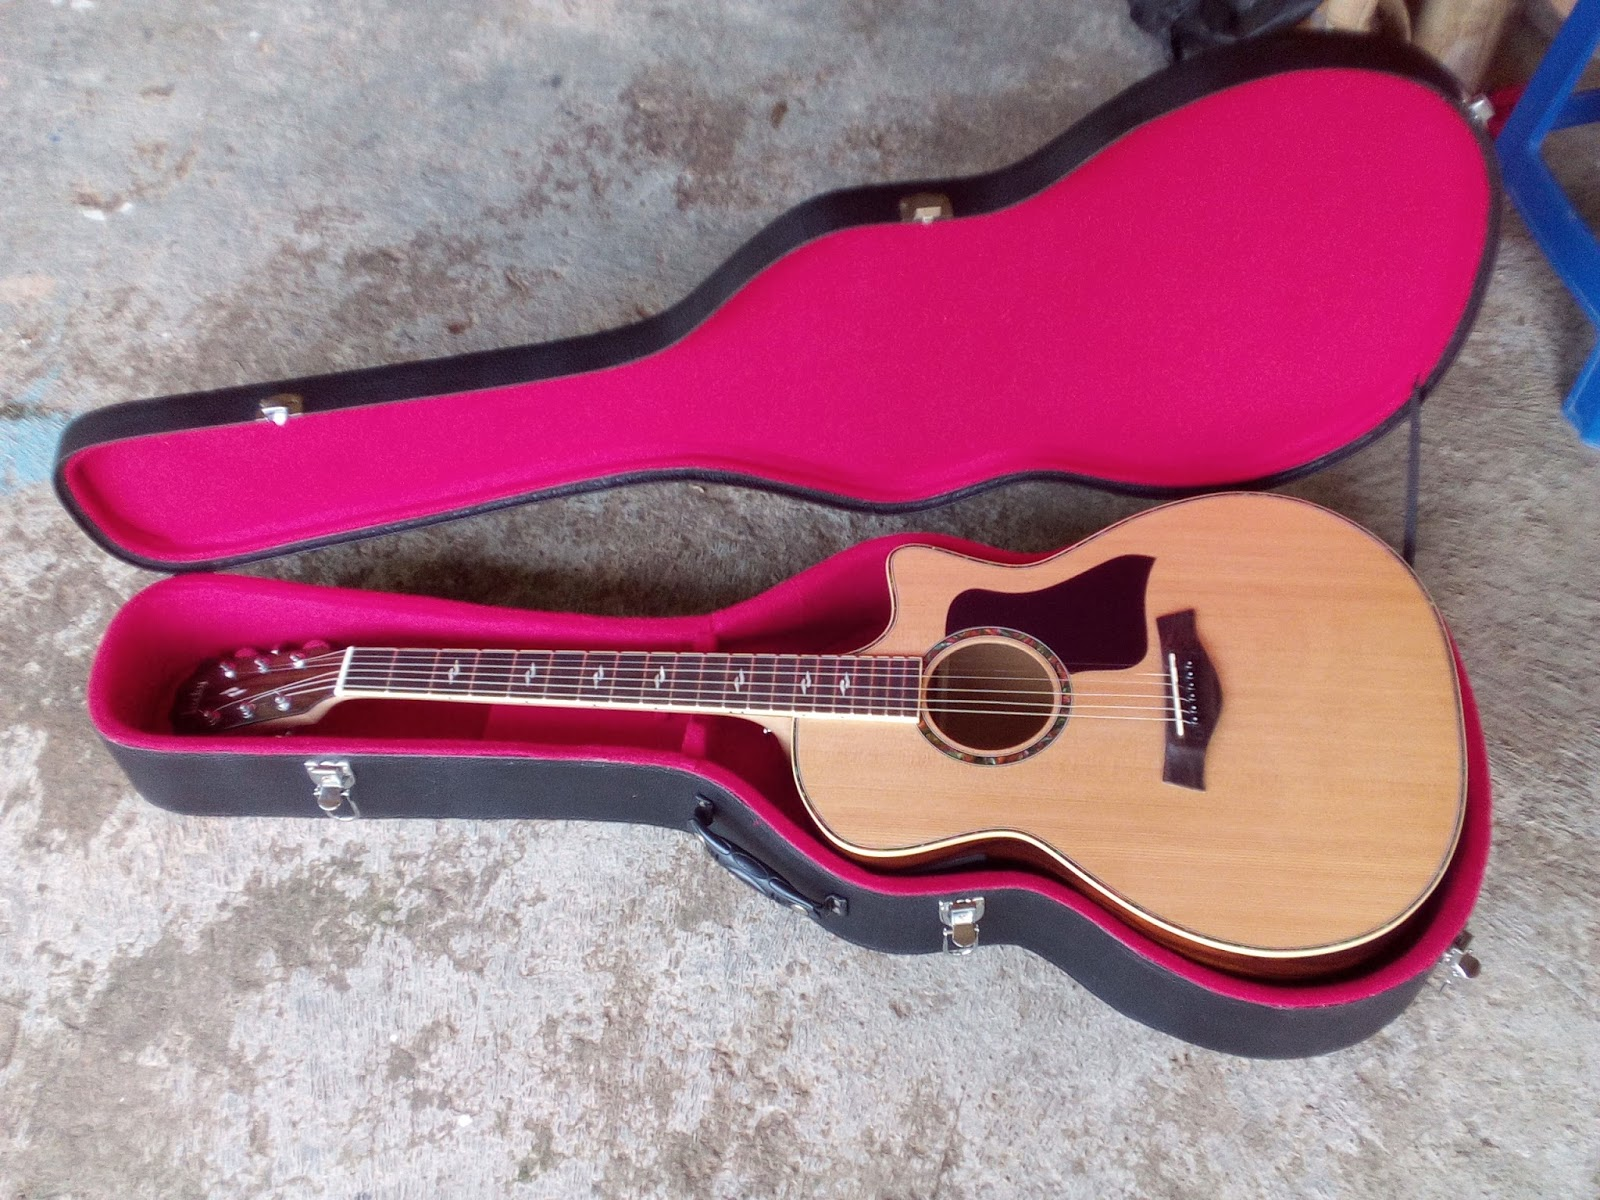 Gitar Akustik Elektrik Custome Model TAYLOR Dengan Bahan Back Side Body Menggunakan Rosewood